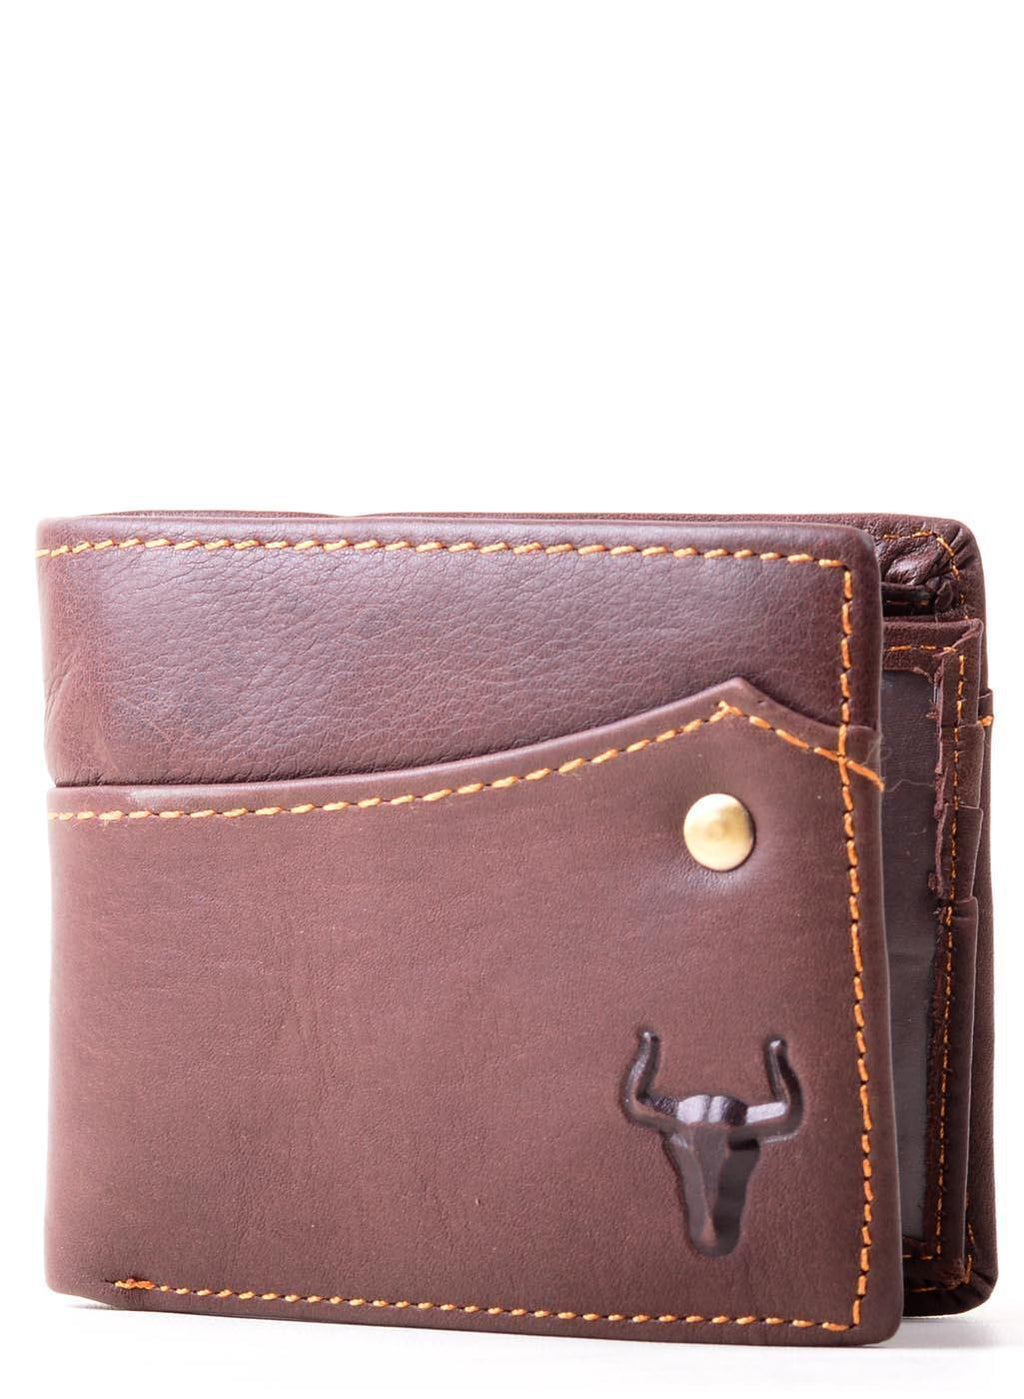 EthniCache Wallet Smart Handmade Pure Leather Wallet